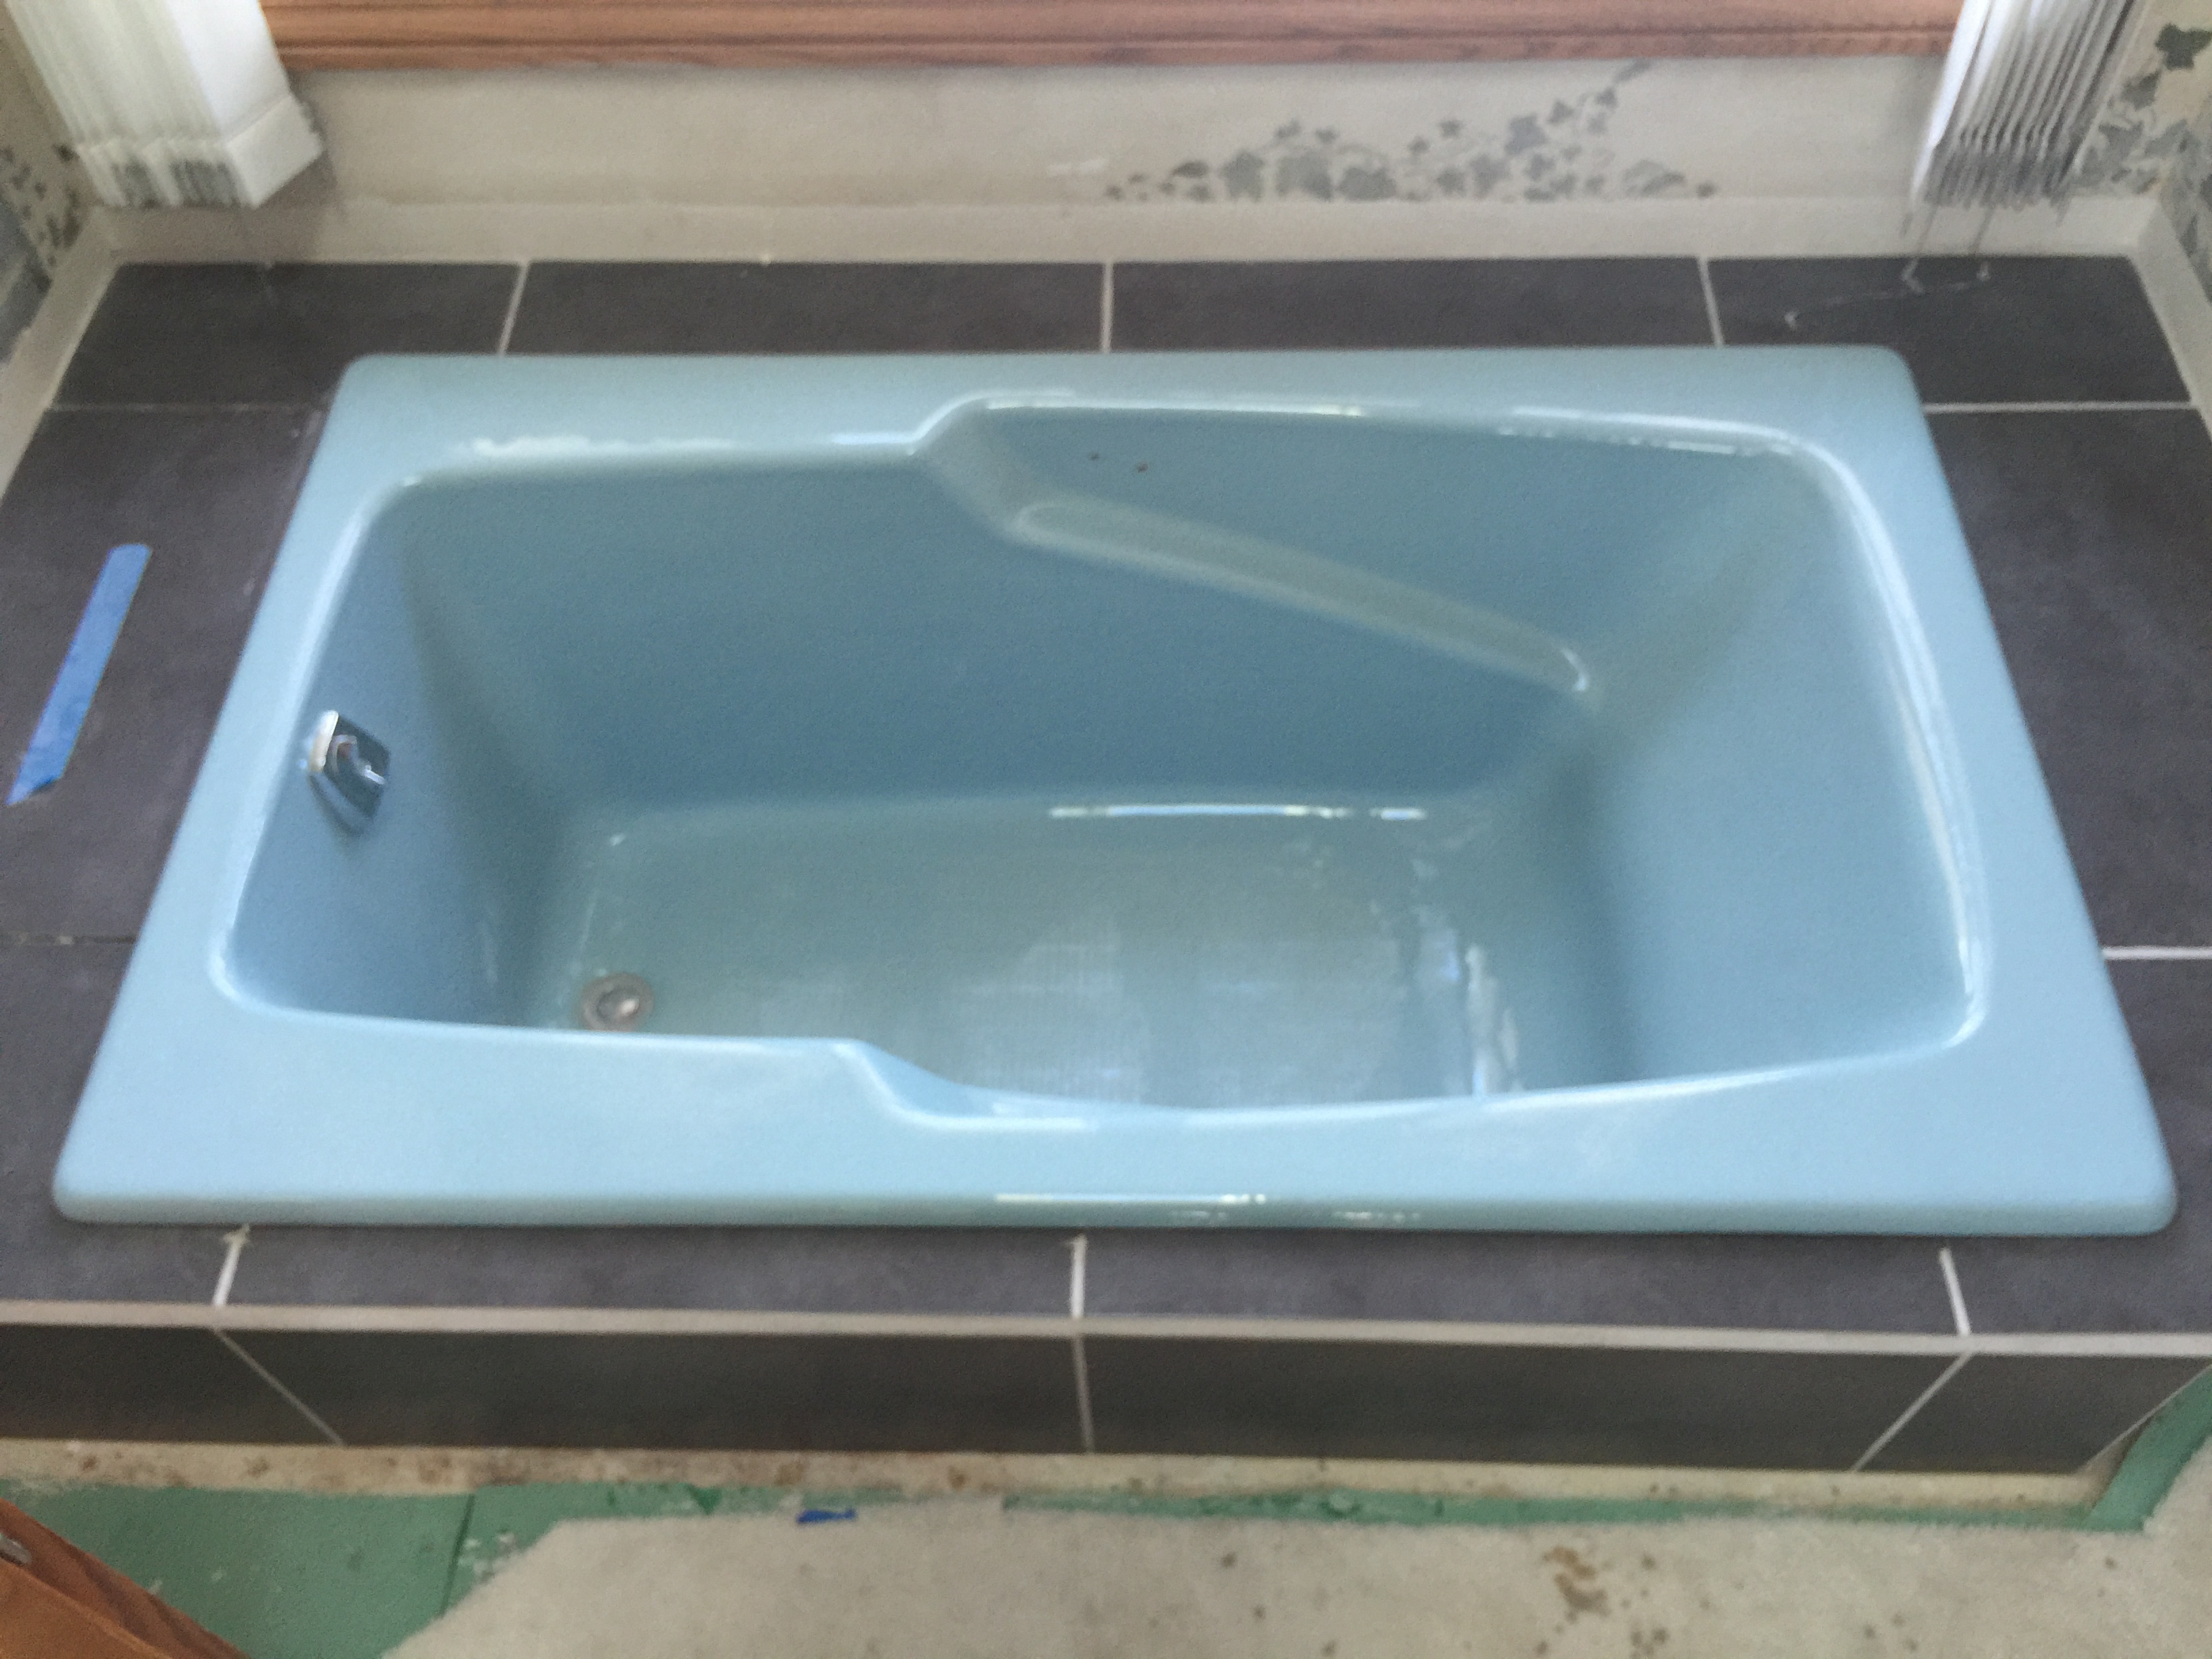 Soaker tub after new tile installed